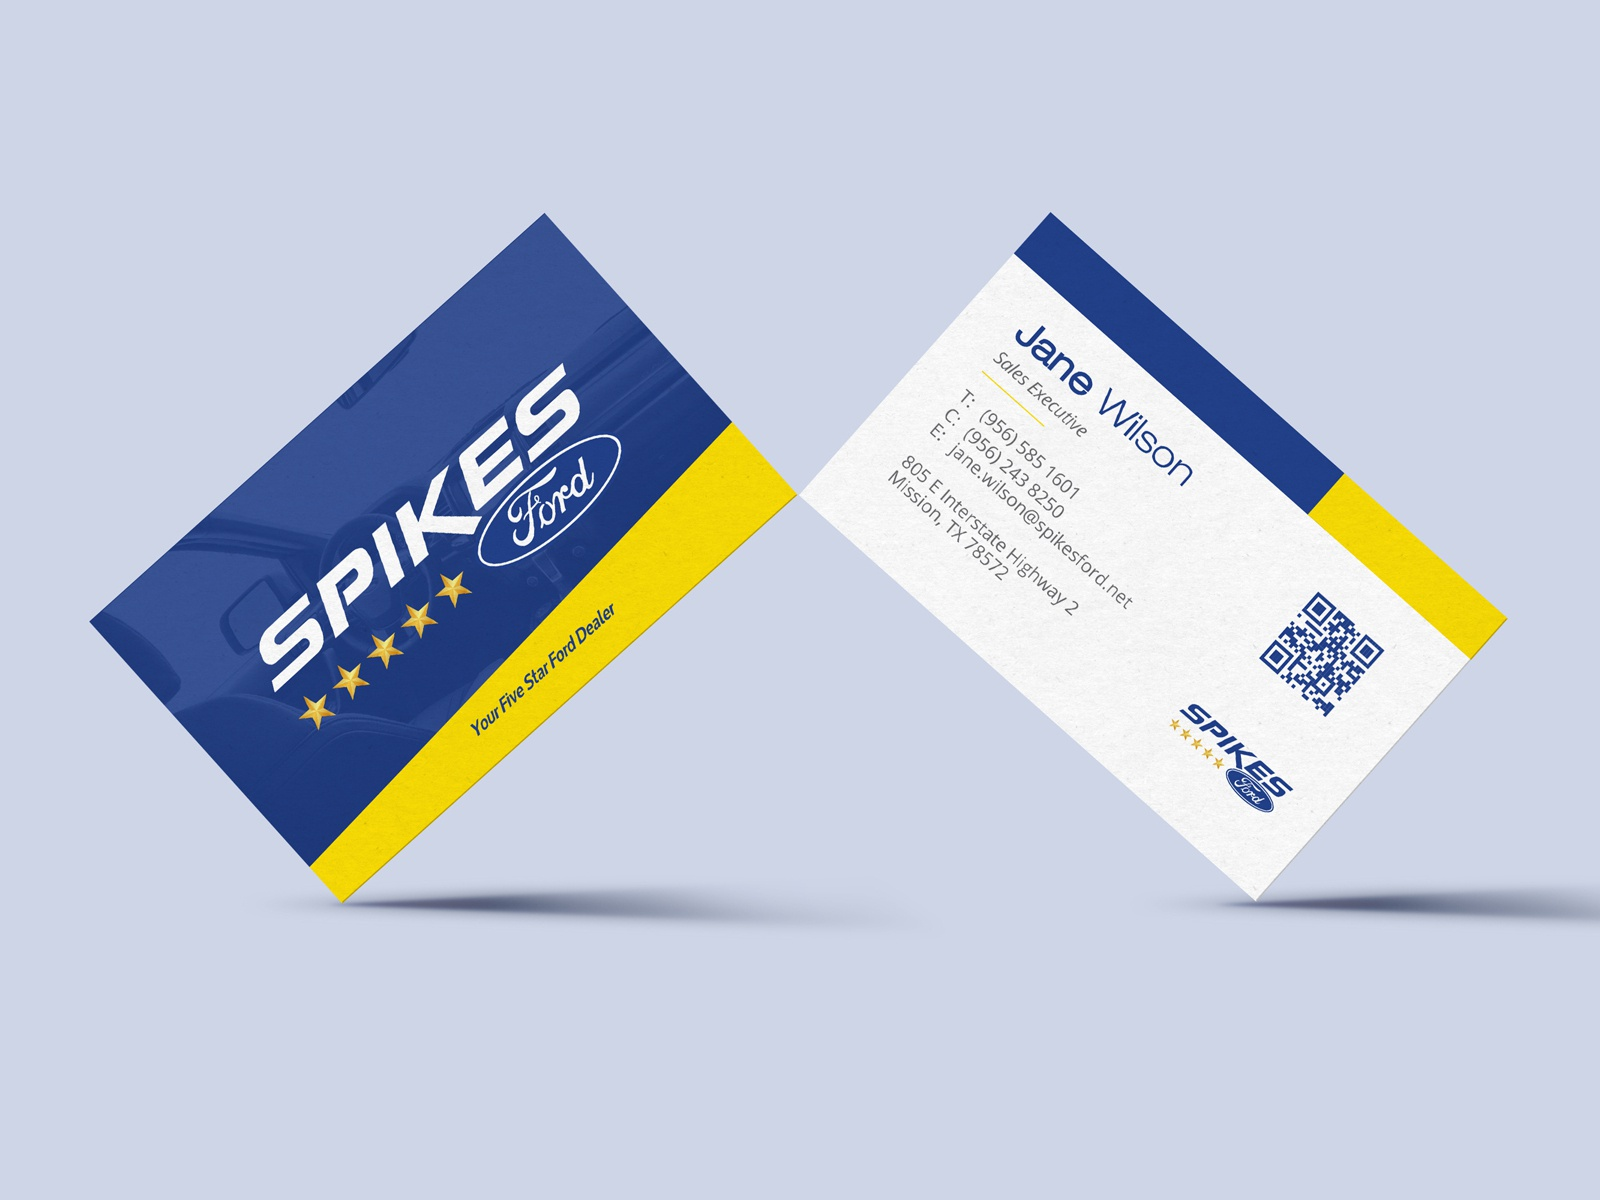 spikes ford business cards by lu gimello on dribbble spikes ford business cards by lu